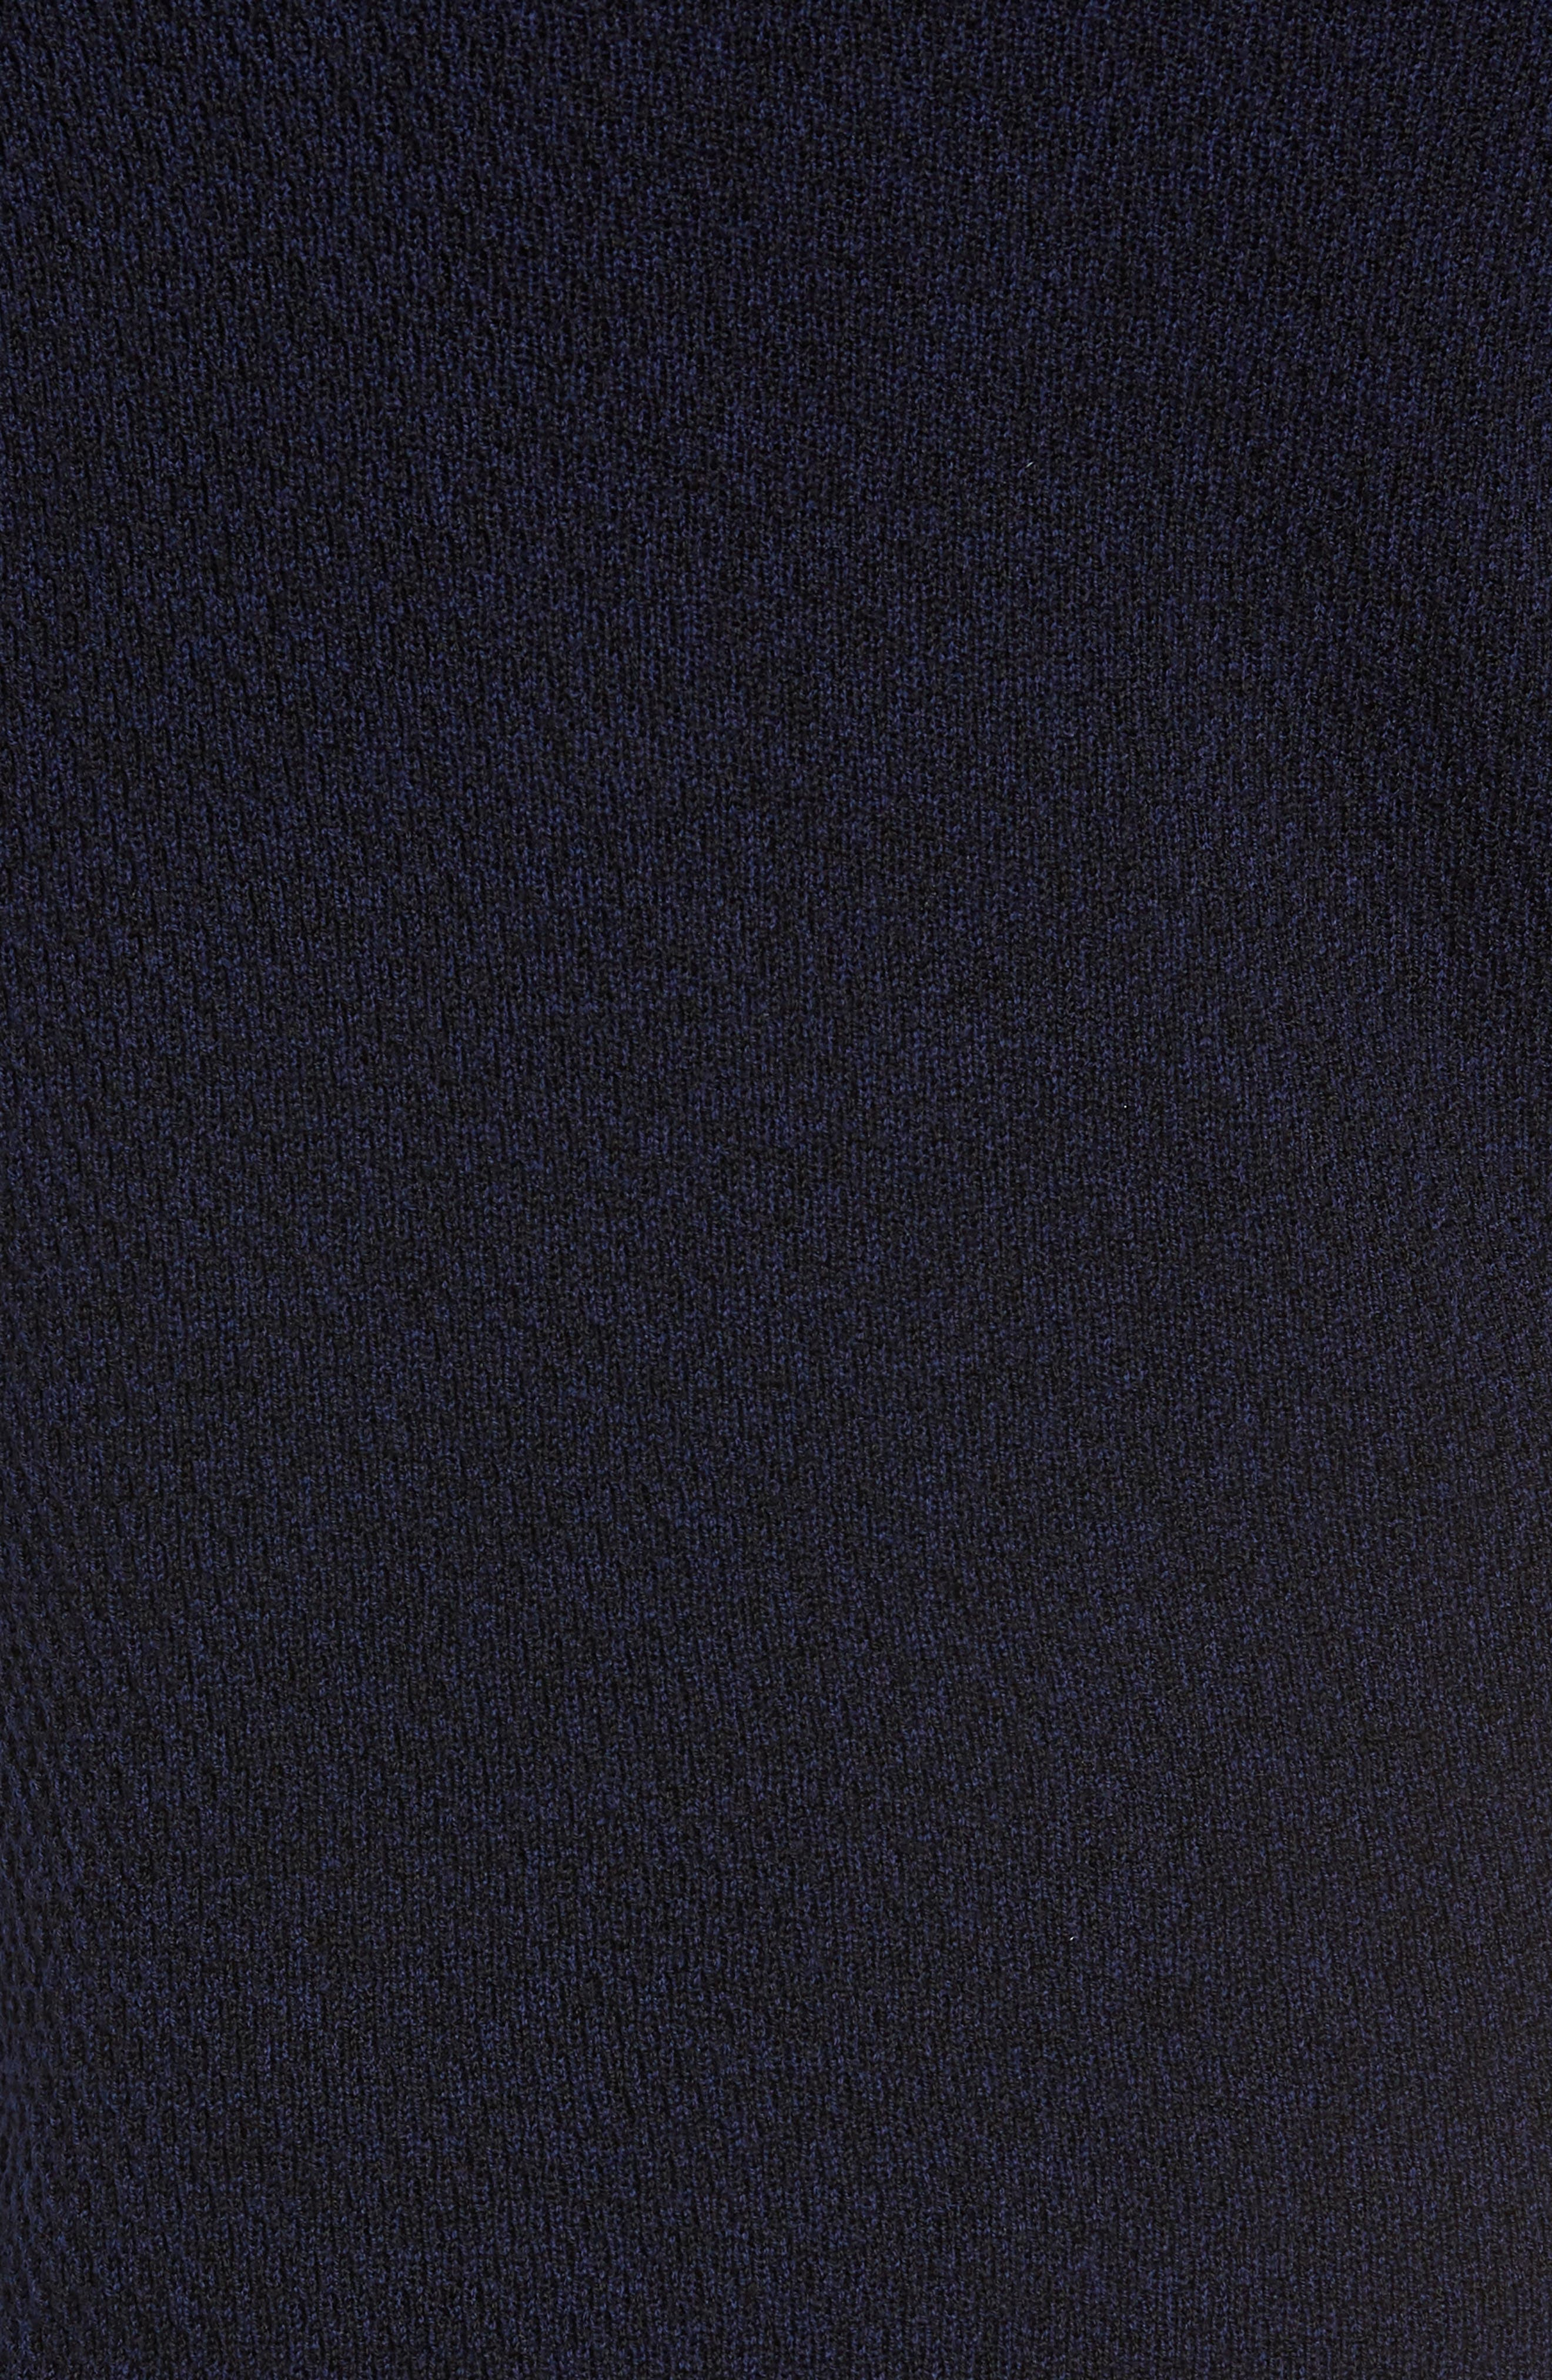 Gregory Wool Blend Crewneck Sweater,                             Alternate thumbnail 5, color,                             NAVY